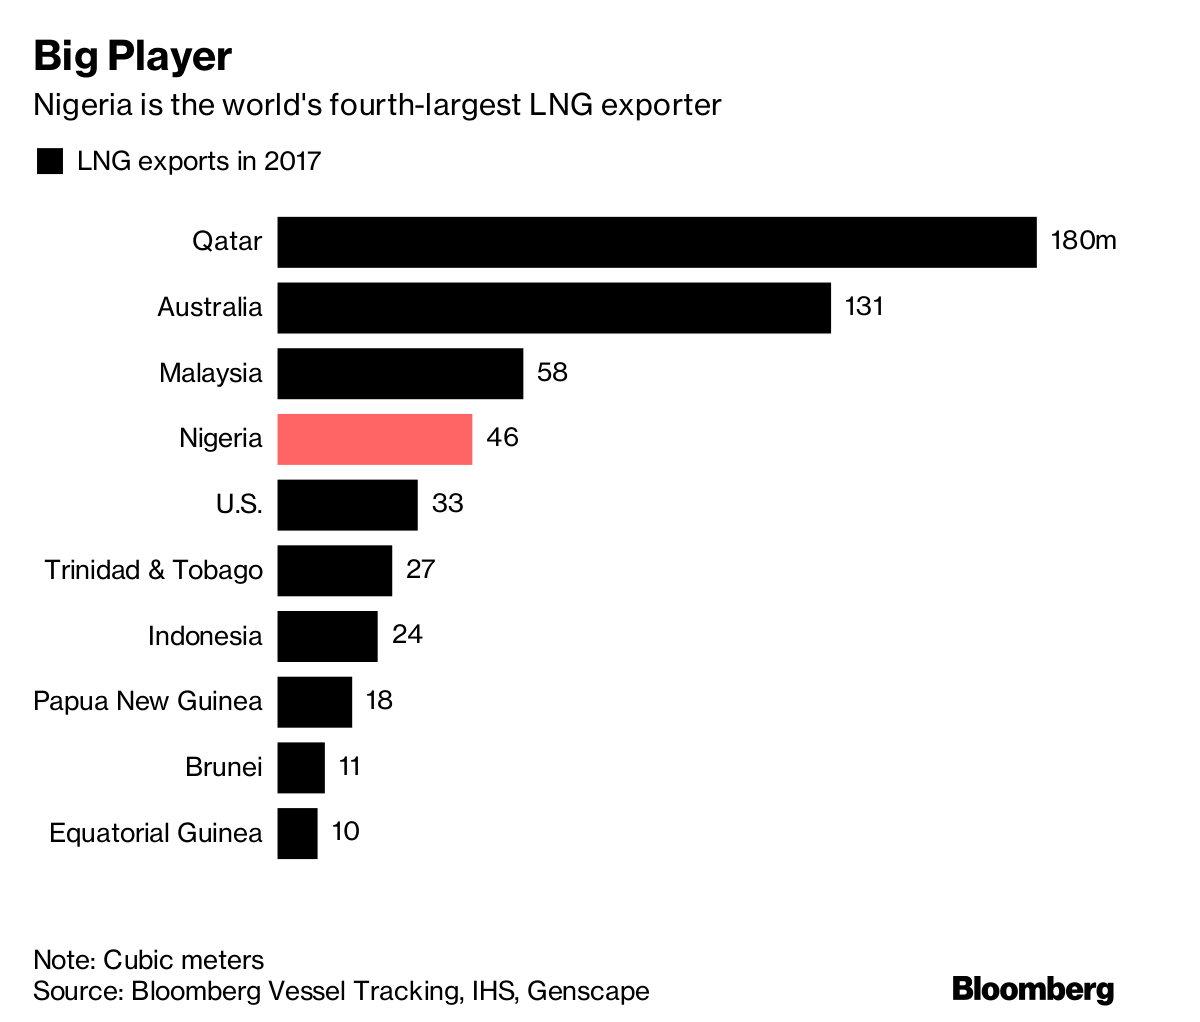 Africa Oil Giant Needs $12 Billion to Avoid Missing LNG